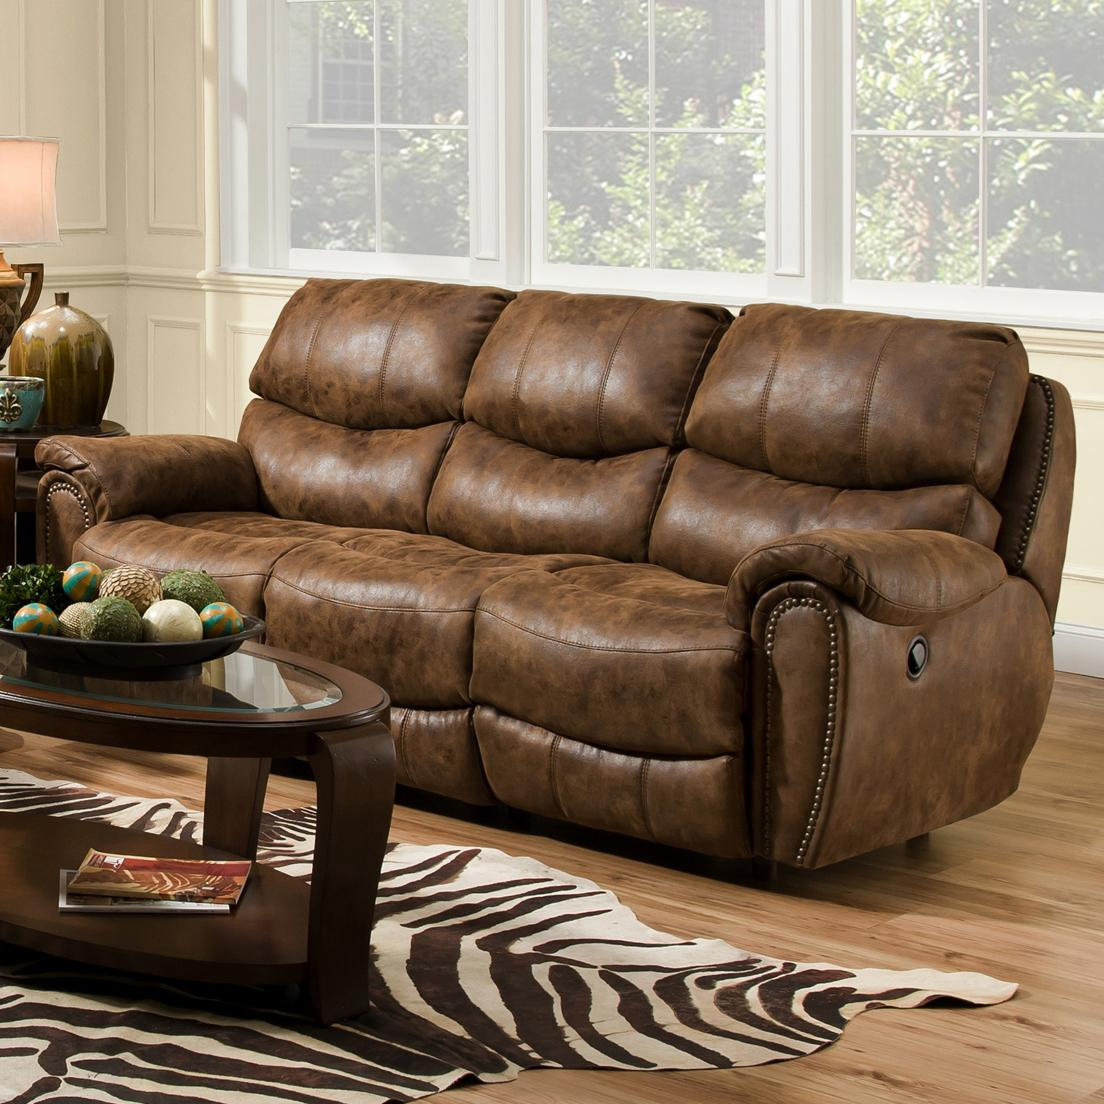 Richmond Reclining Sofa by Franklin at Rooms for Less